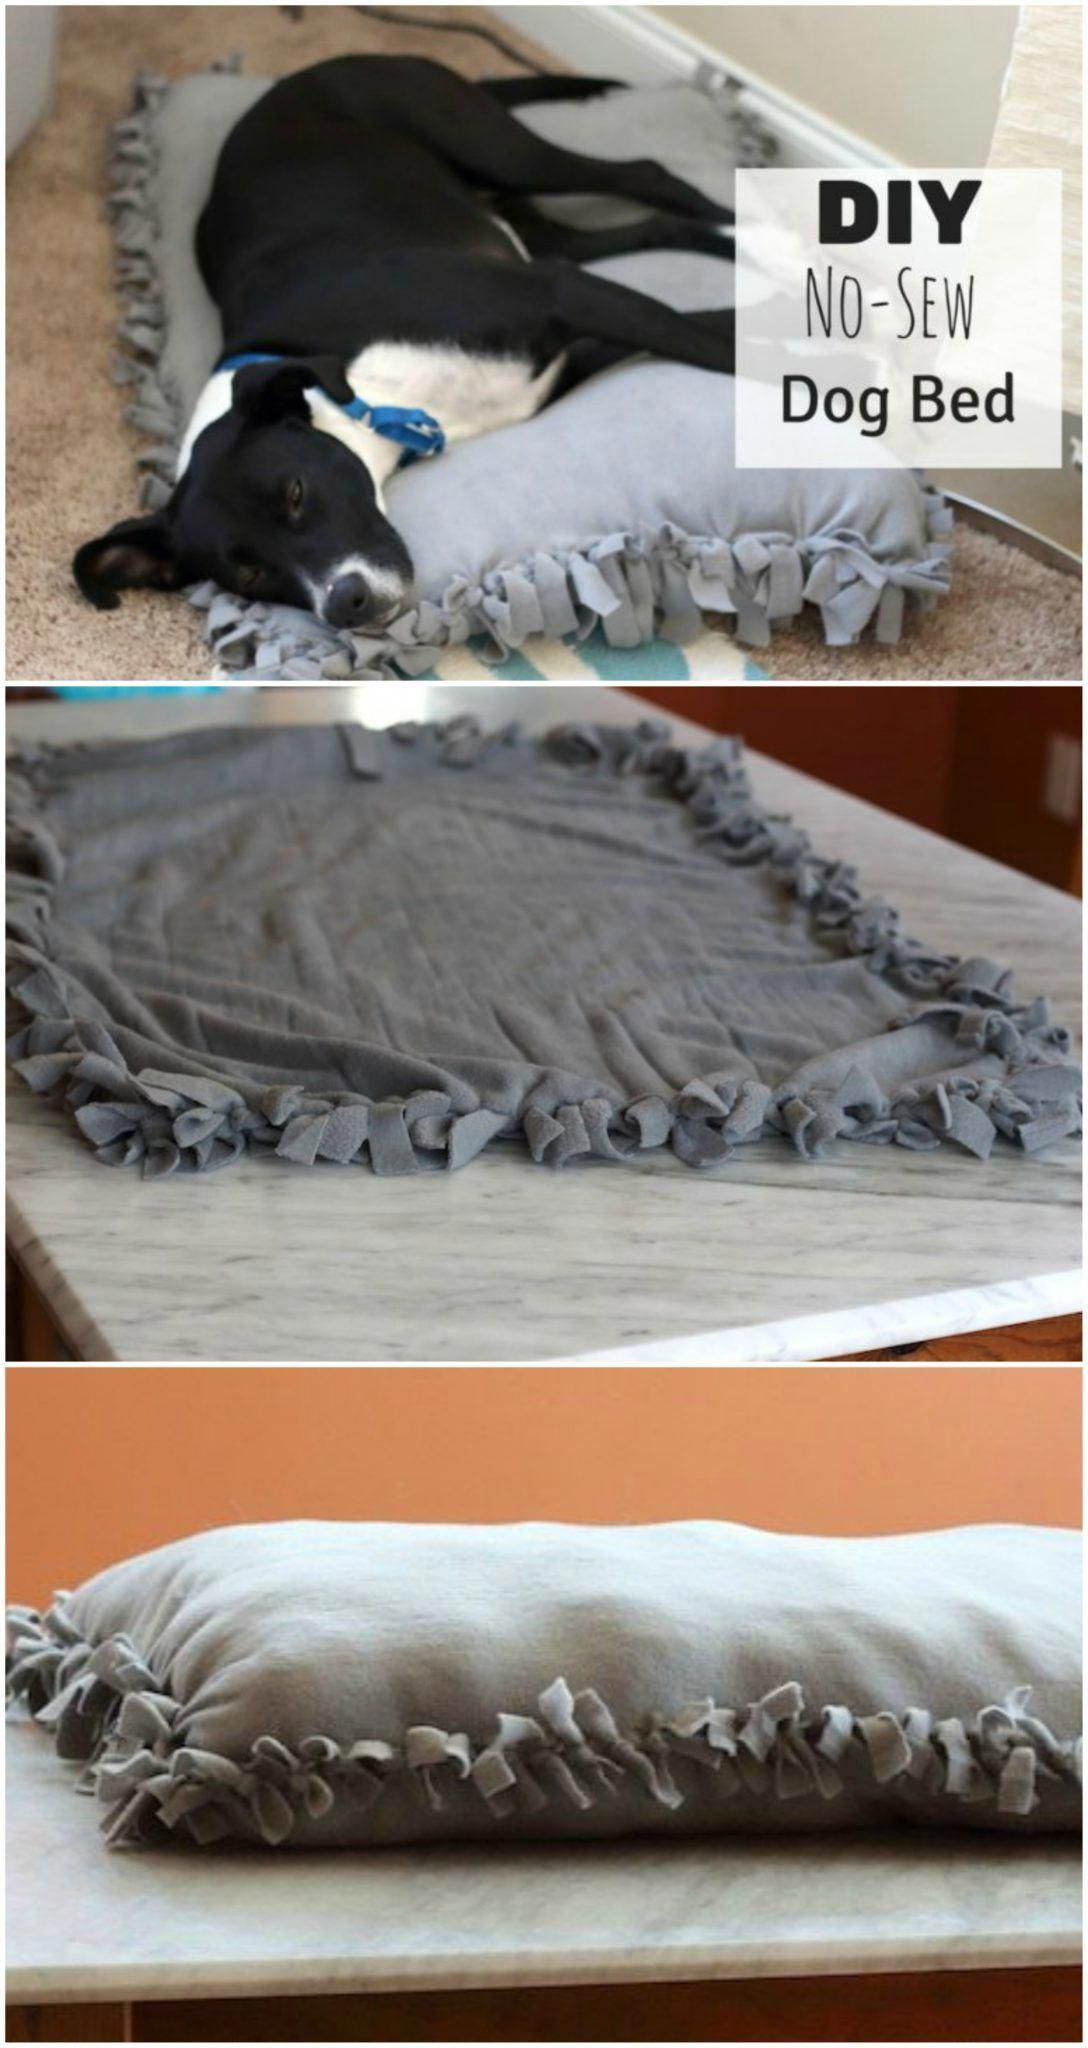 Diy No Sew Dog Bed For Under 10 Make Your Own Pet